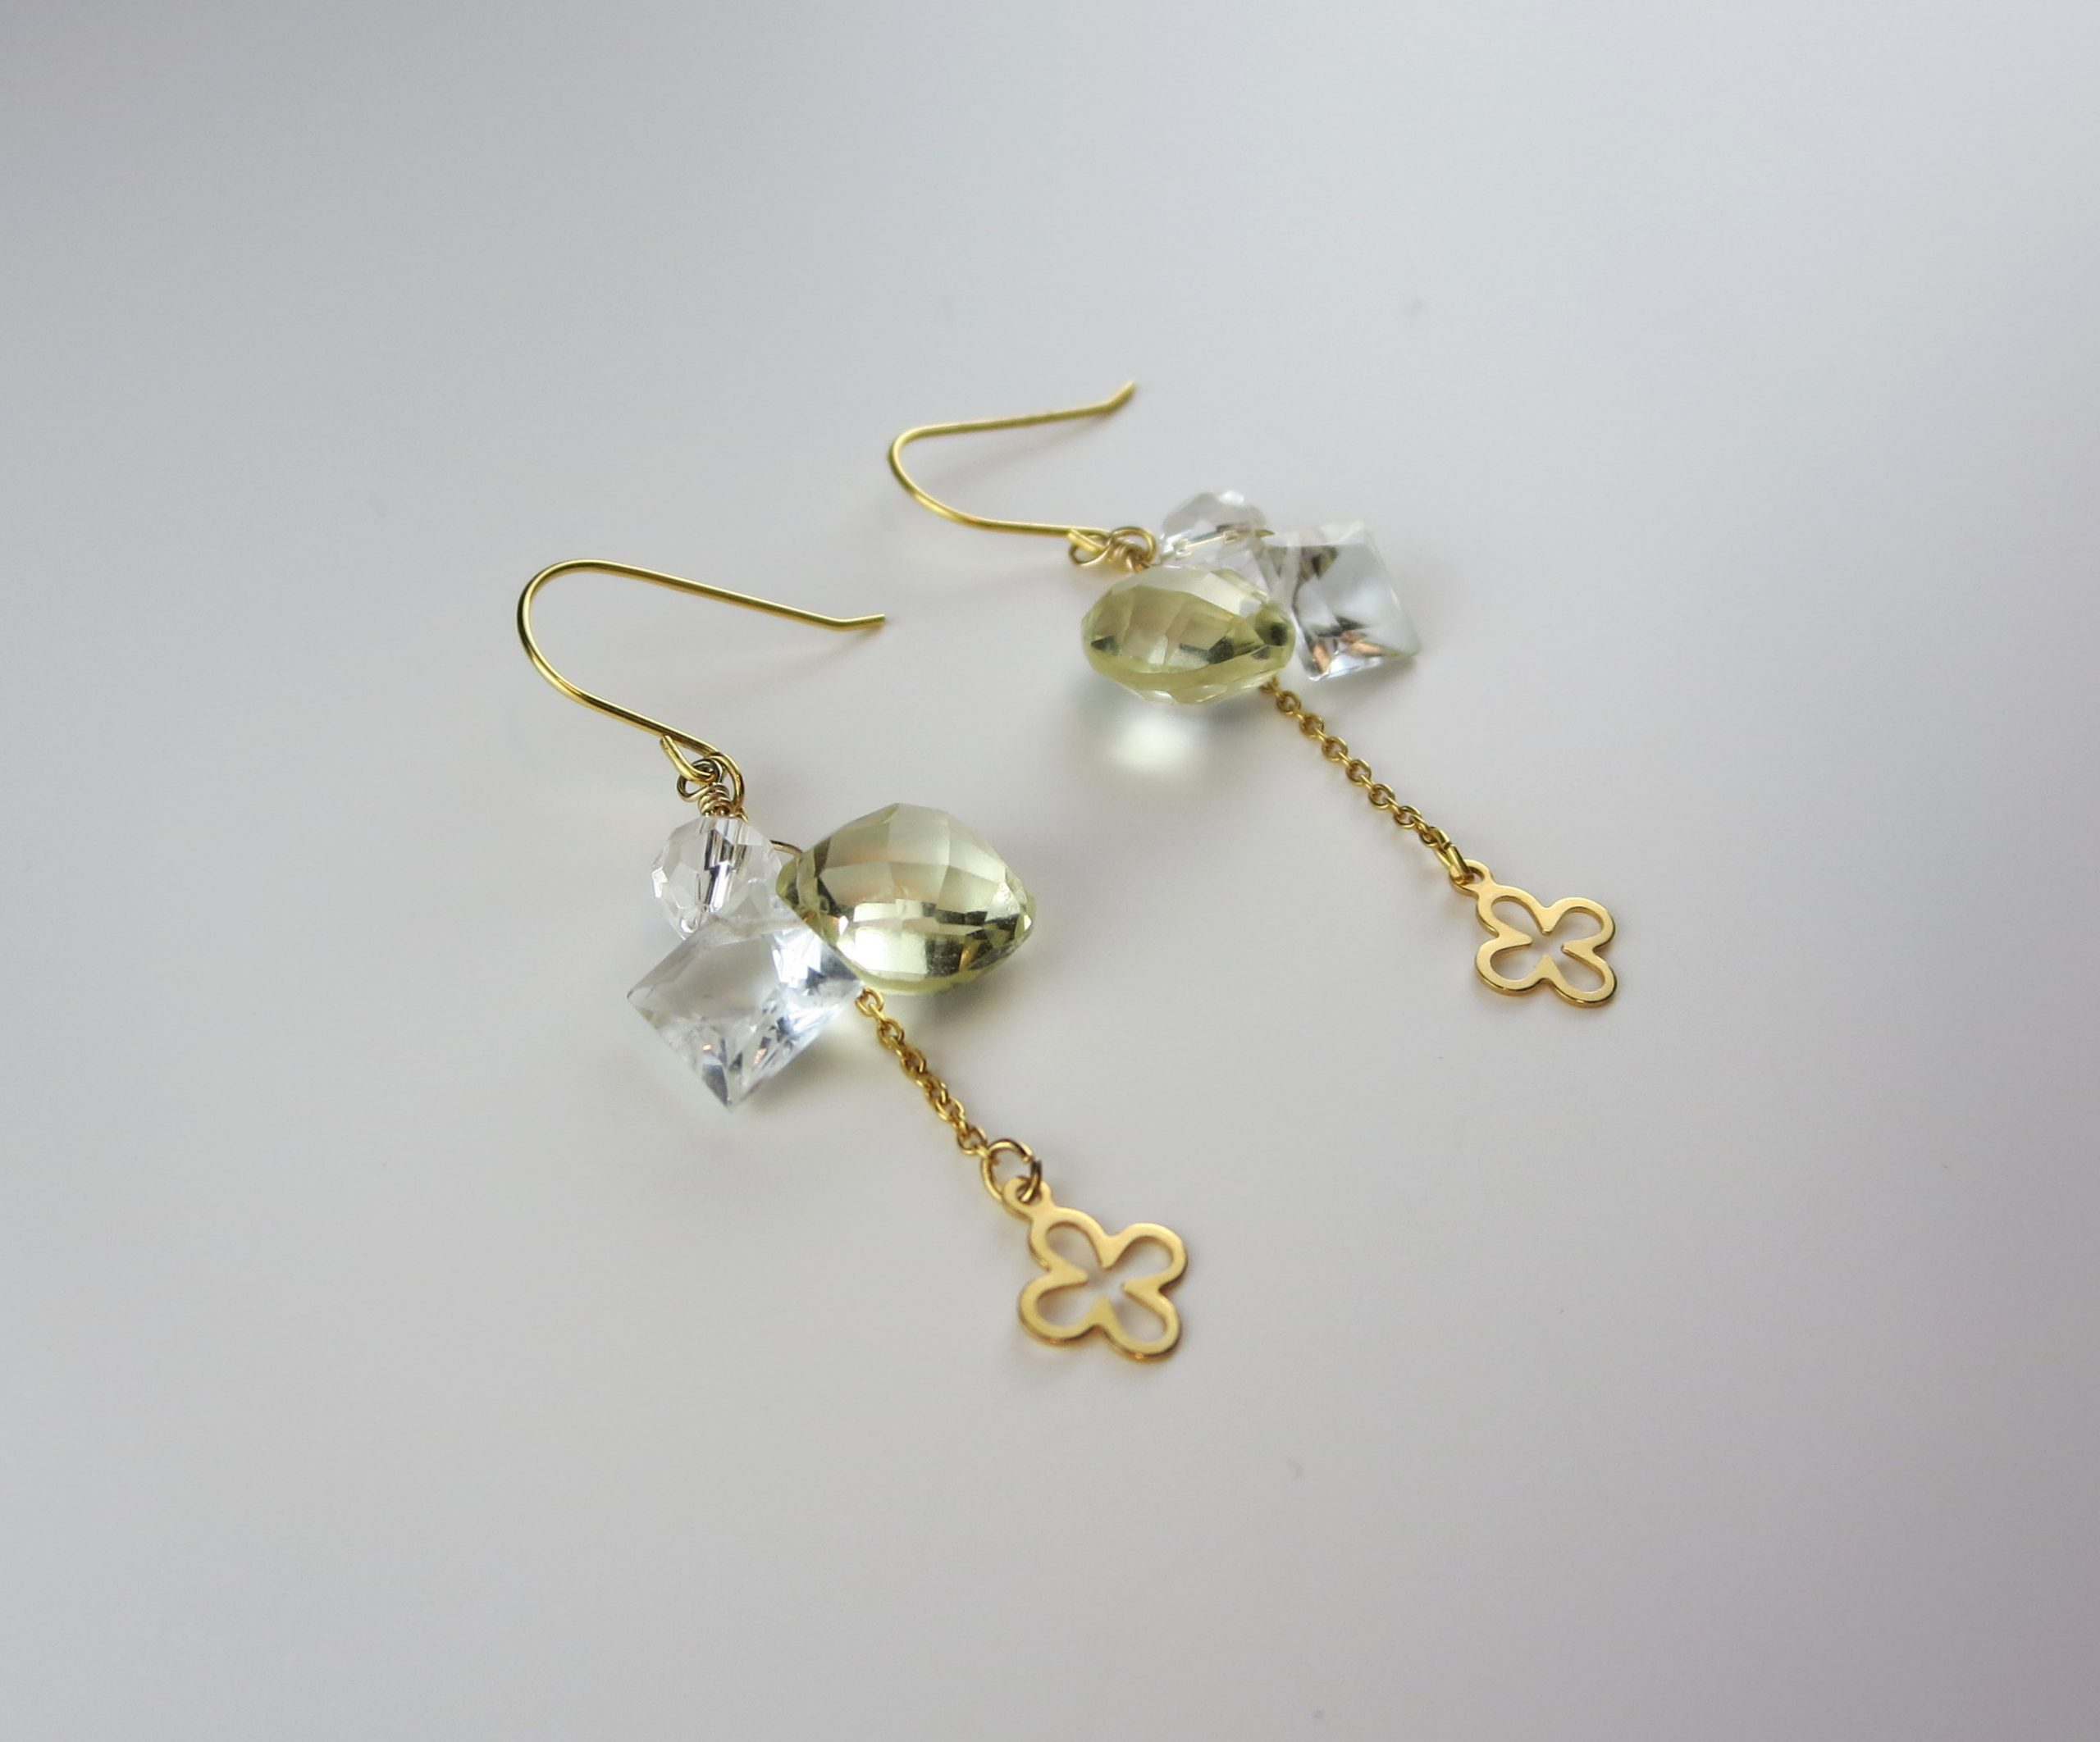 Lemon quartz clover motif earrings